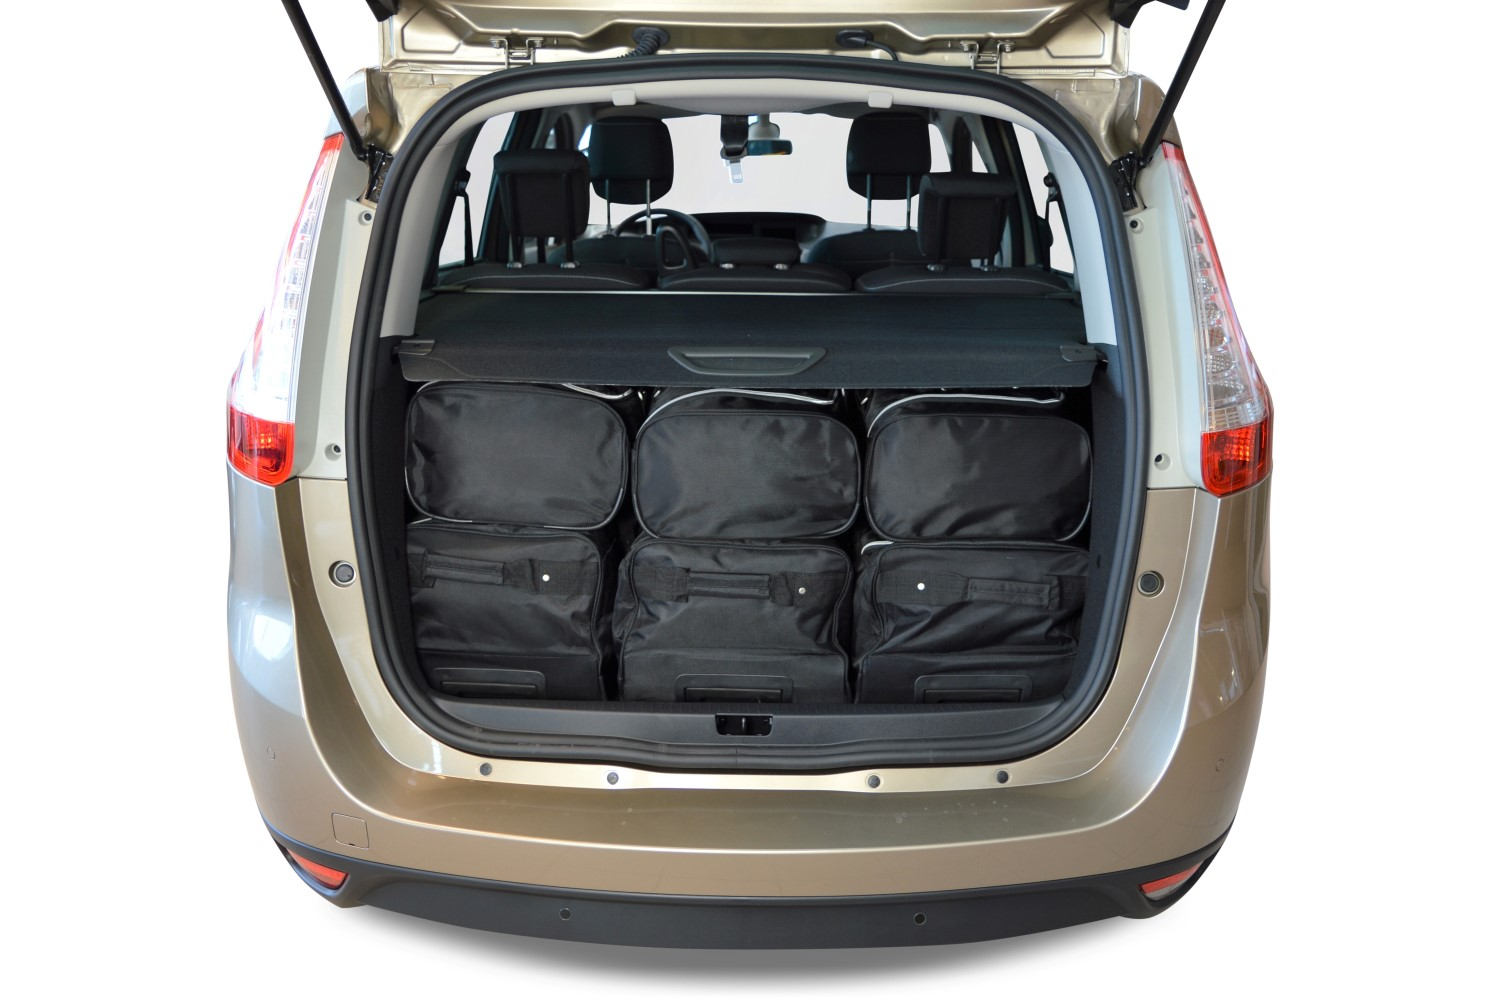 car bags sacs de voyage renault grand sc nic iii 2009 2016 car bags set de sacs de voyage. Black Bedroom Furniture Sets. Home Design Ideas